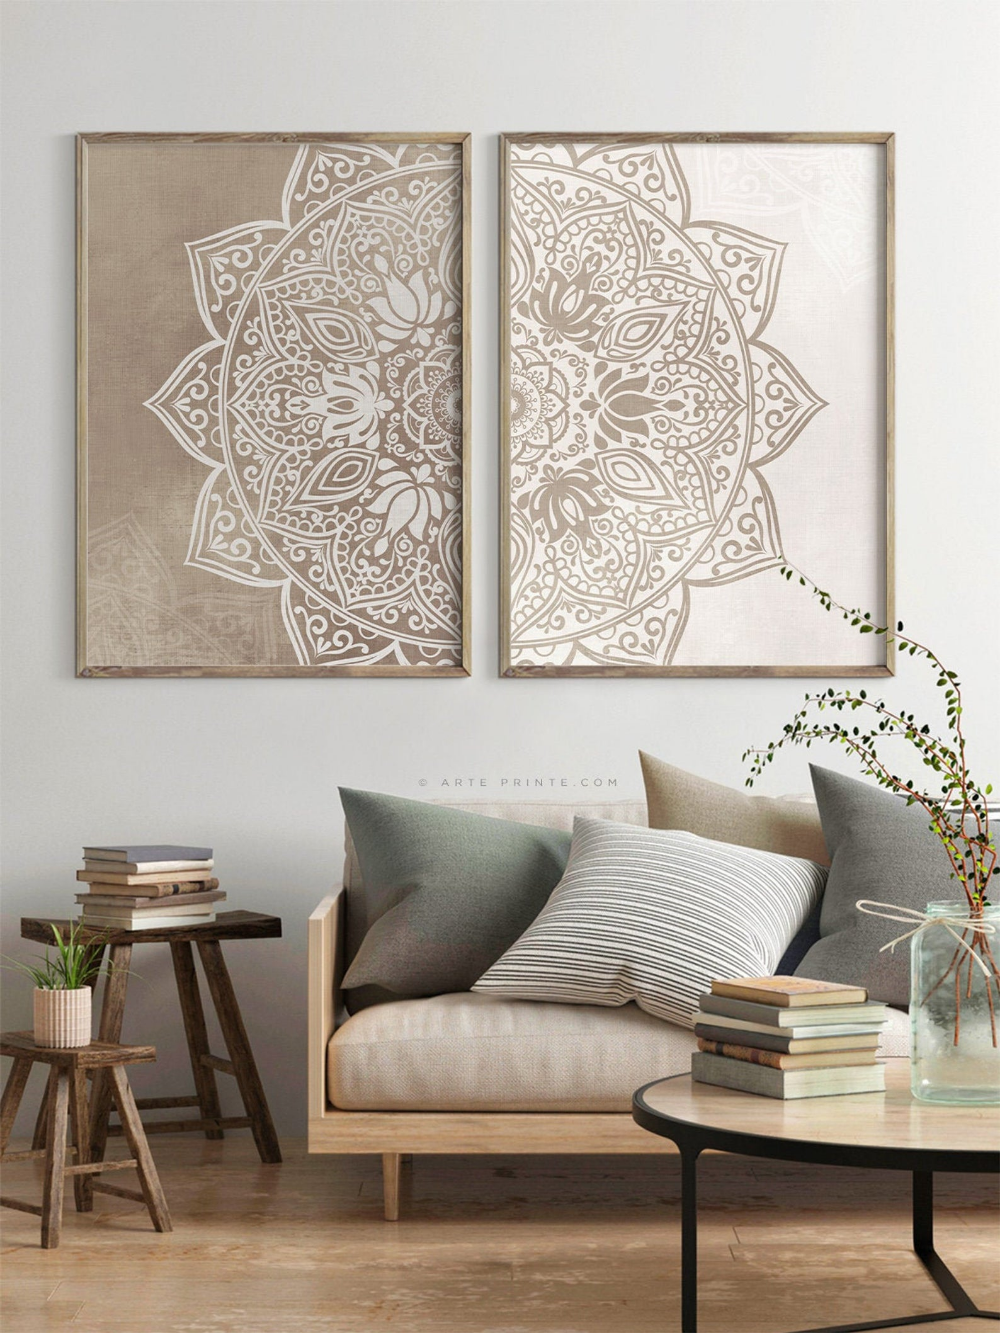 Boho Wall Decor Living Room Set Of 2 Mandala Wall Art Beige Etsy Mandala In 2020 Room Wall Decor Boho Wall Decor Wall Decor Living Room